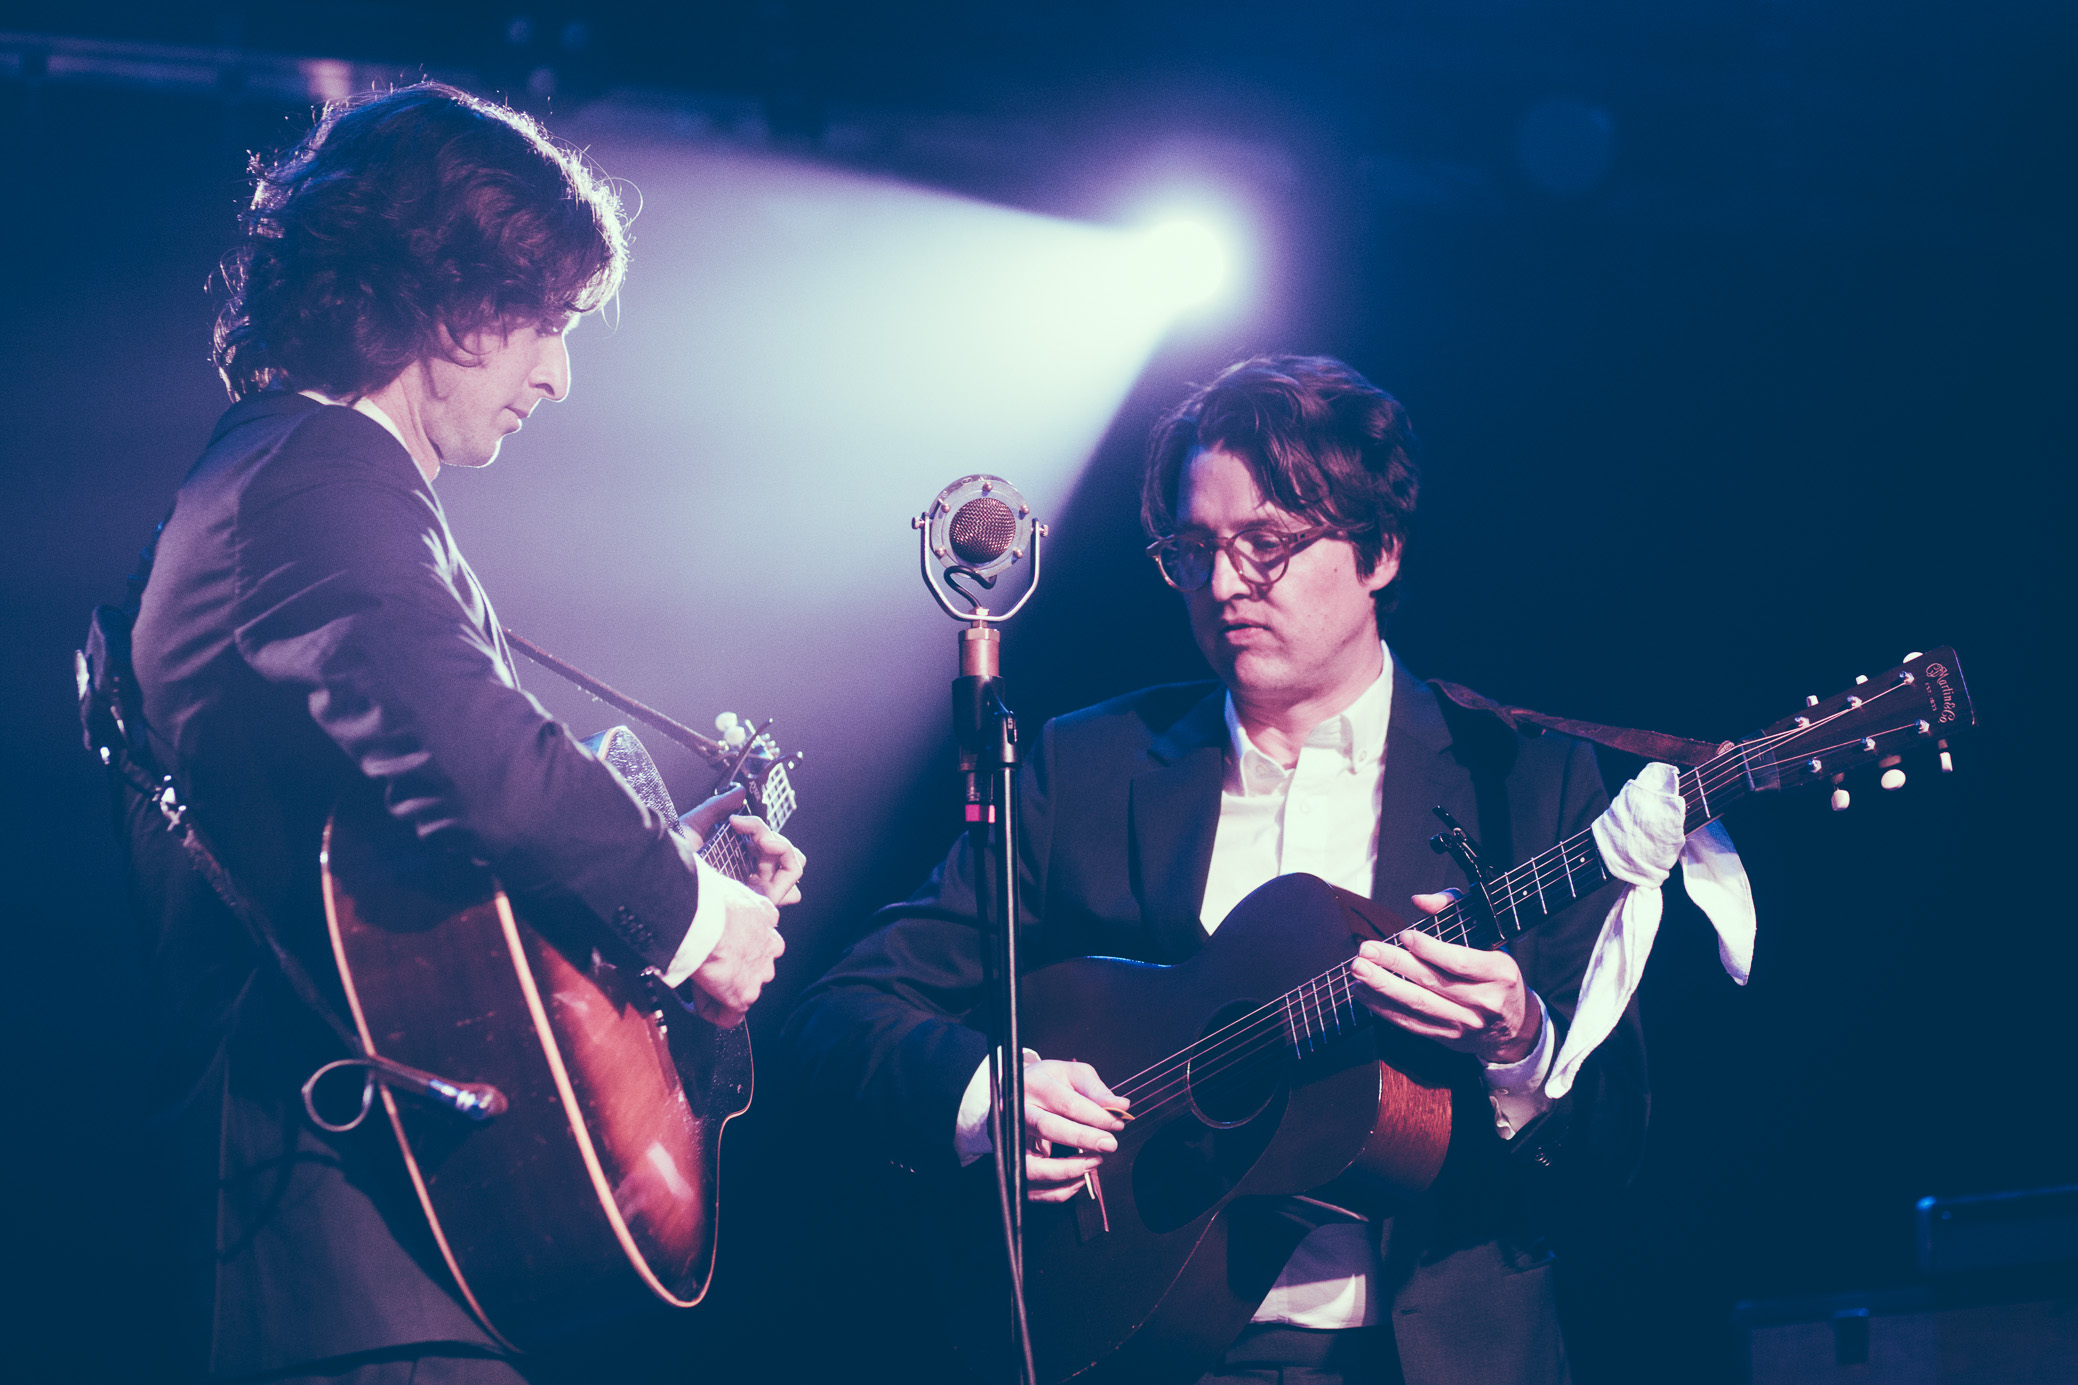 The Milk Carton Kids perform in concert at Saturn Birmingham in Birmingham, Alabama on April 24th, 2019. (Photo by David A. Smith / DSmithScenes)